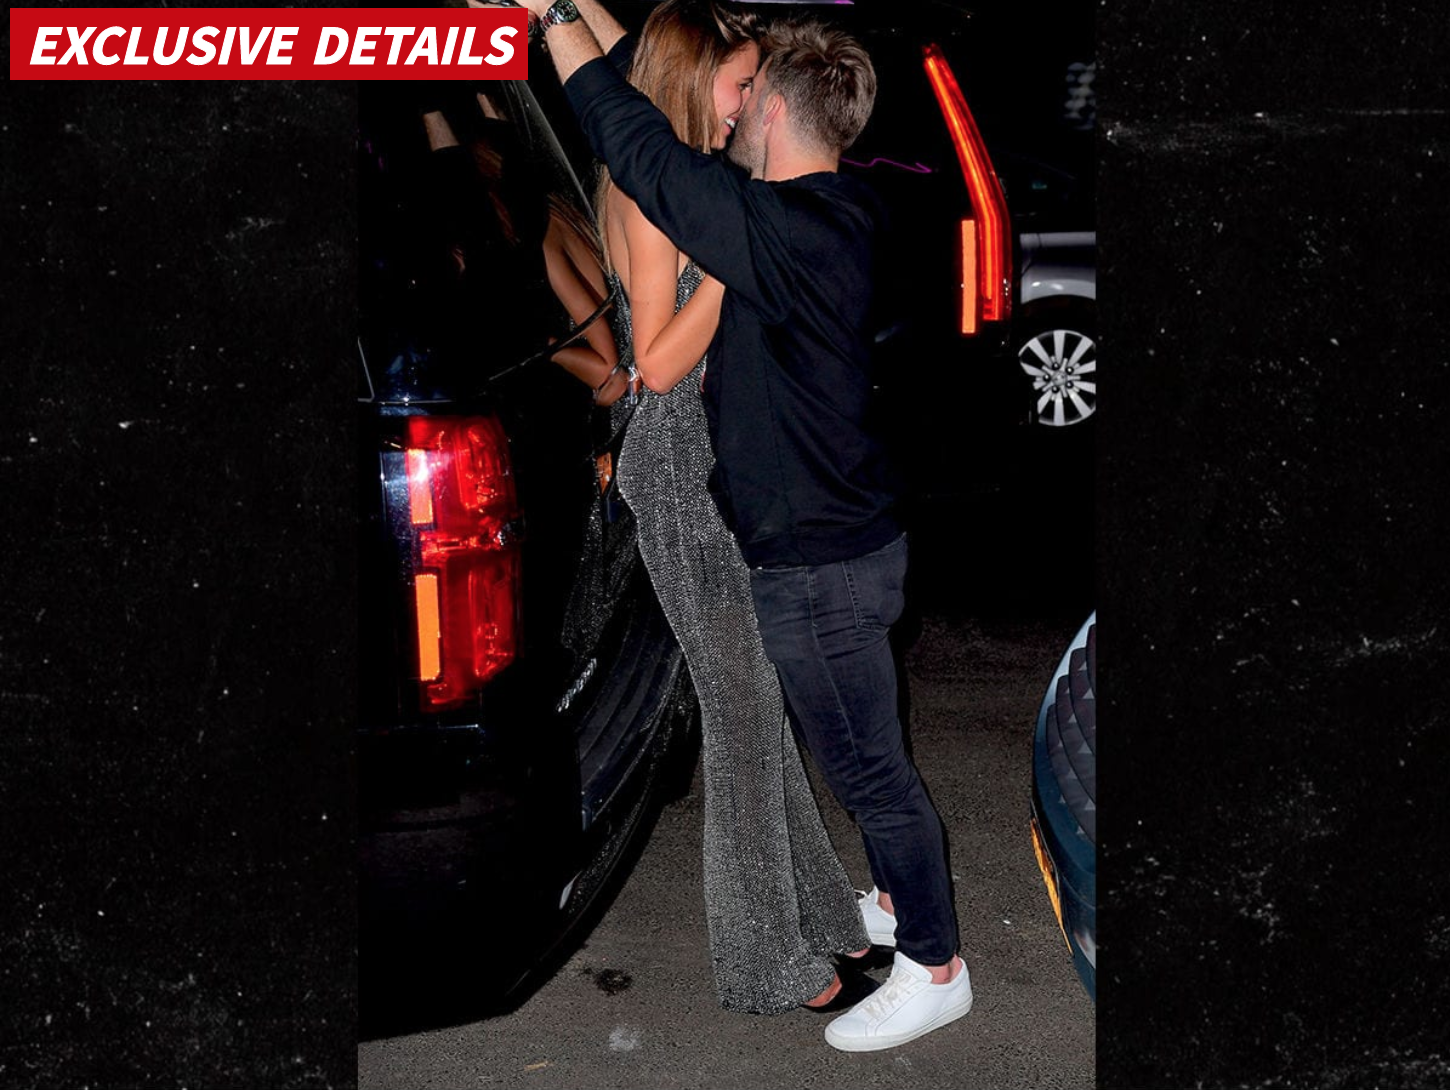 Edelman Continues His Hot Streak By Making Out With A Brazilian Supermodel After The Met Gala